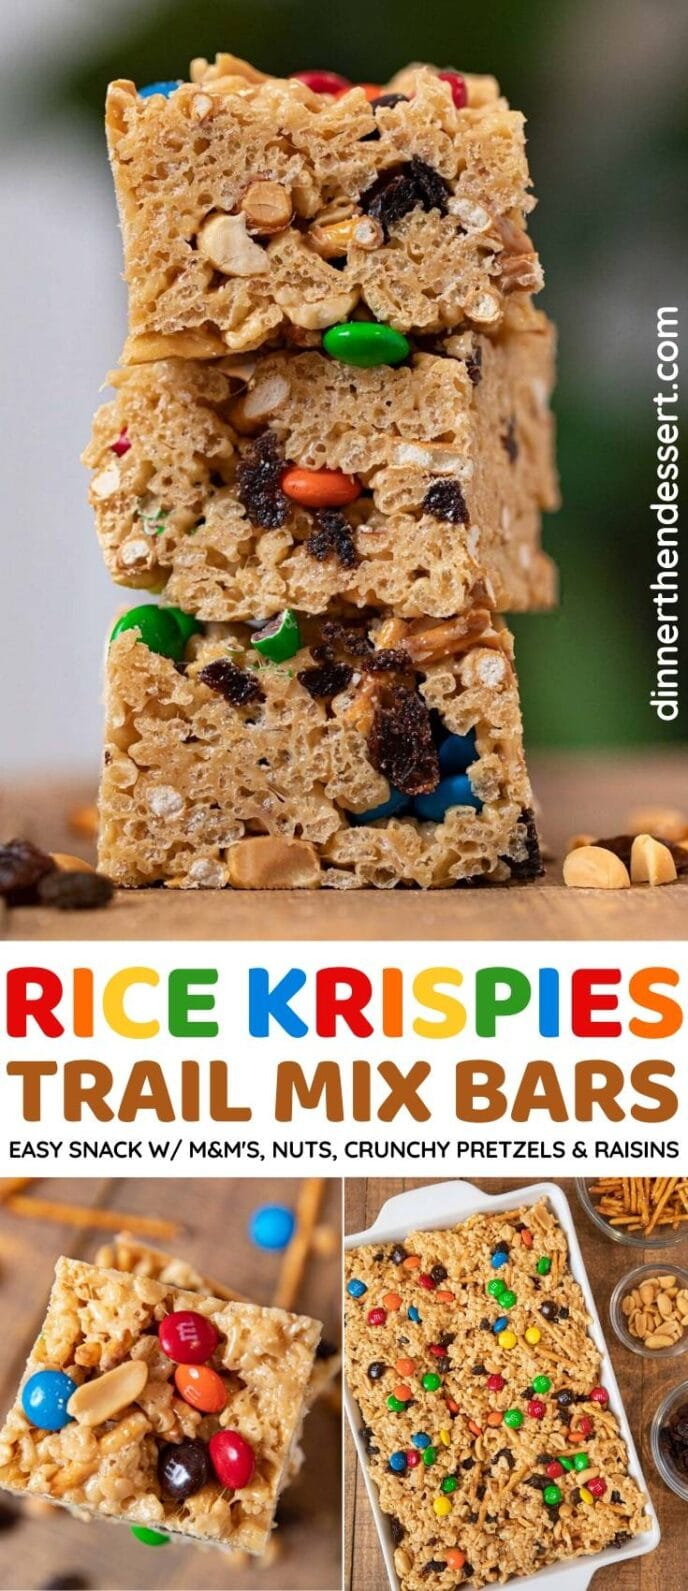 Rice Krispies Trail Mix Bars collage